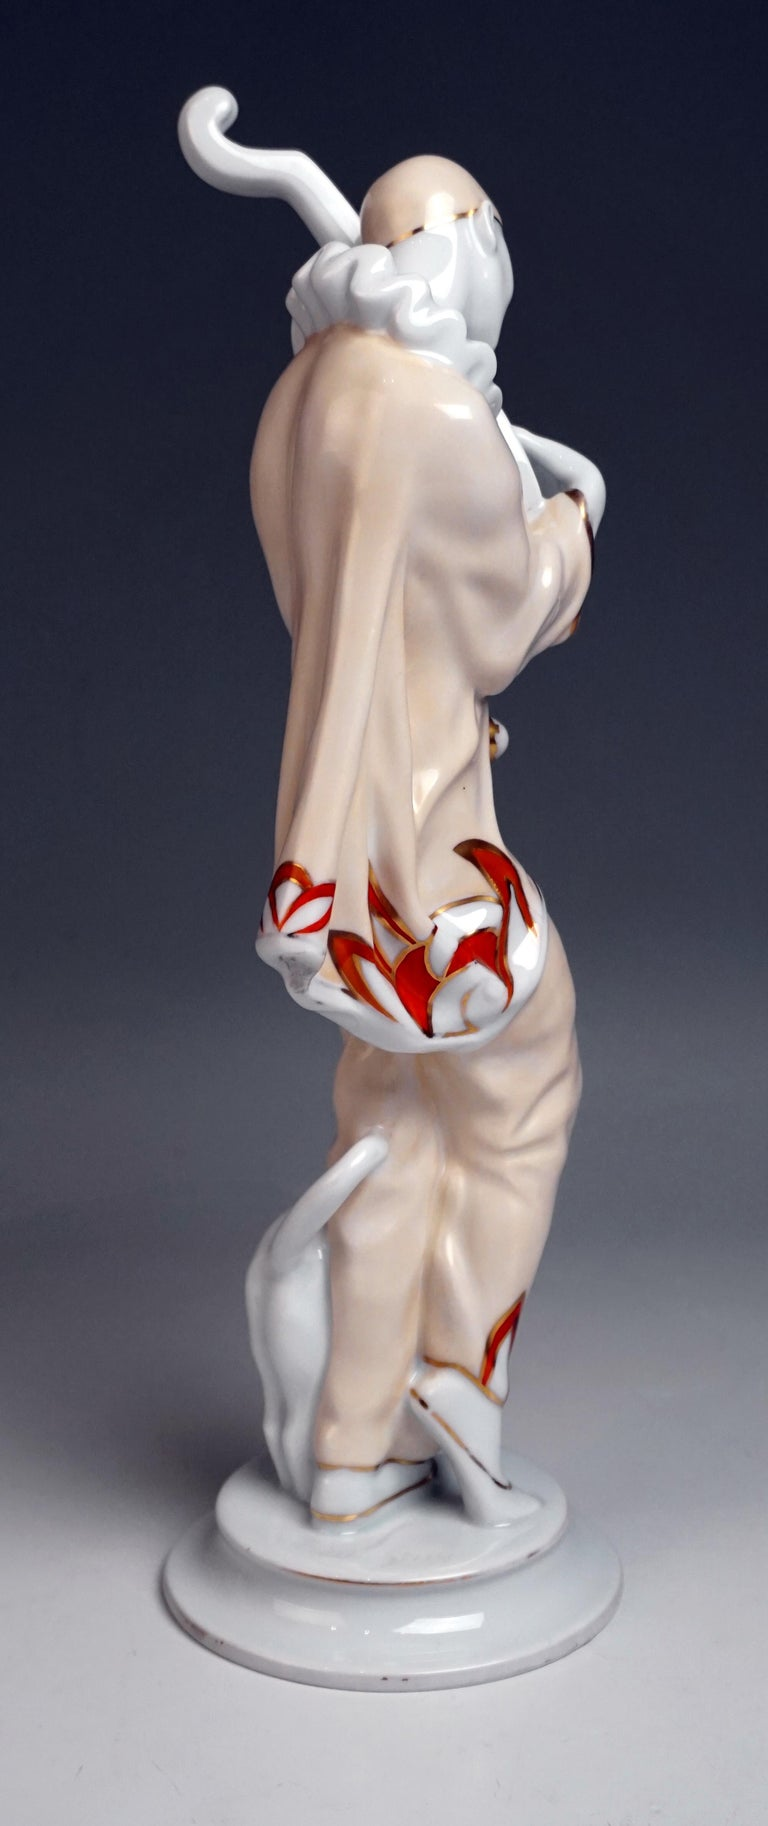 Rosenthal Art Déco Figurine Pierrot 'Ash Wednesday' Max Valentin Germany, 1922 In Good Condition For Sale In Vienna, AT